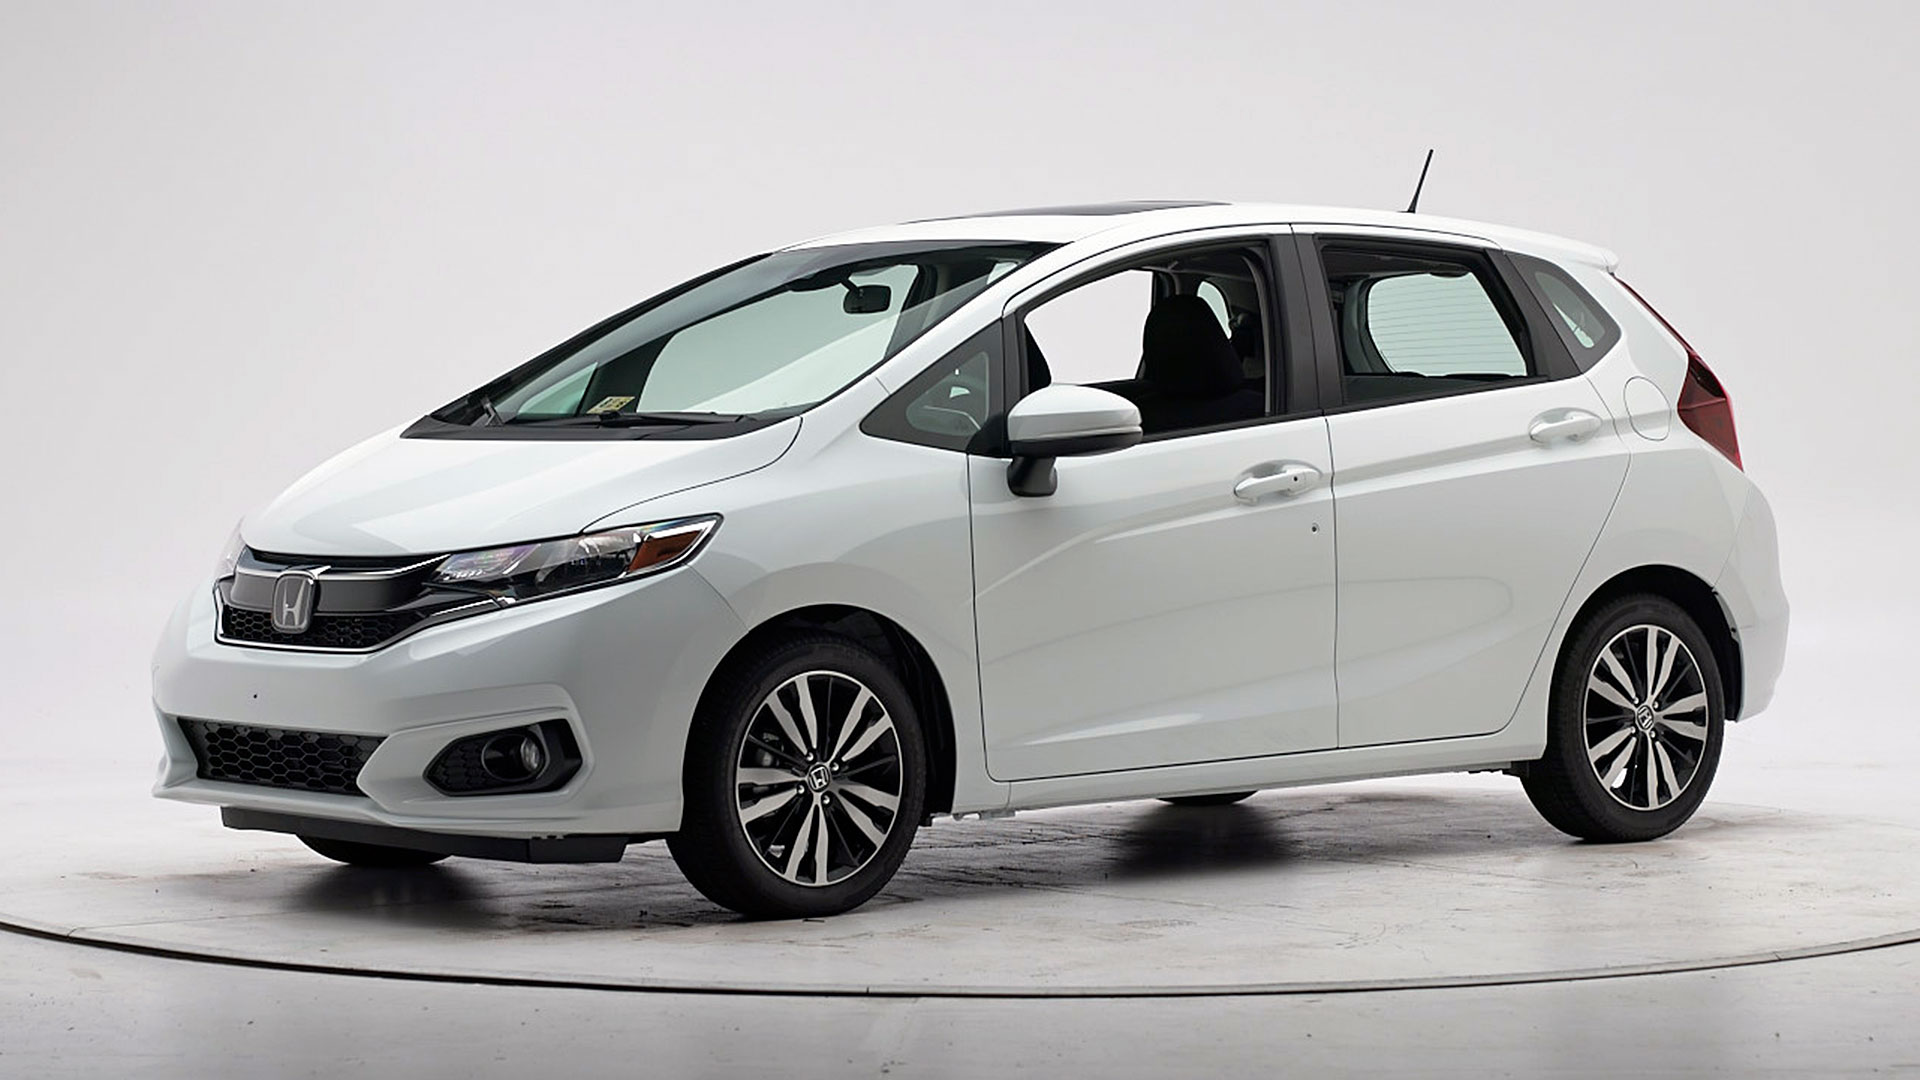 2019 Honda Fit 4-door wagon